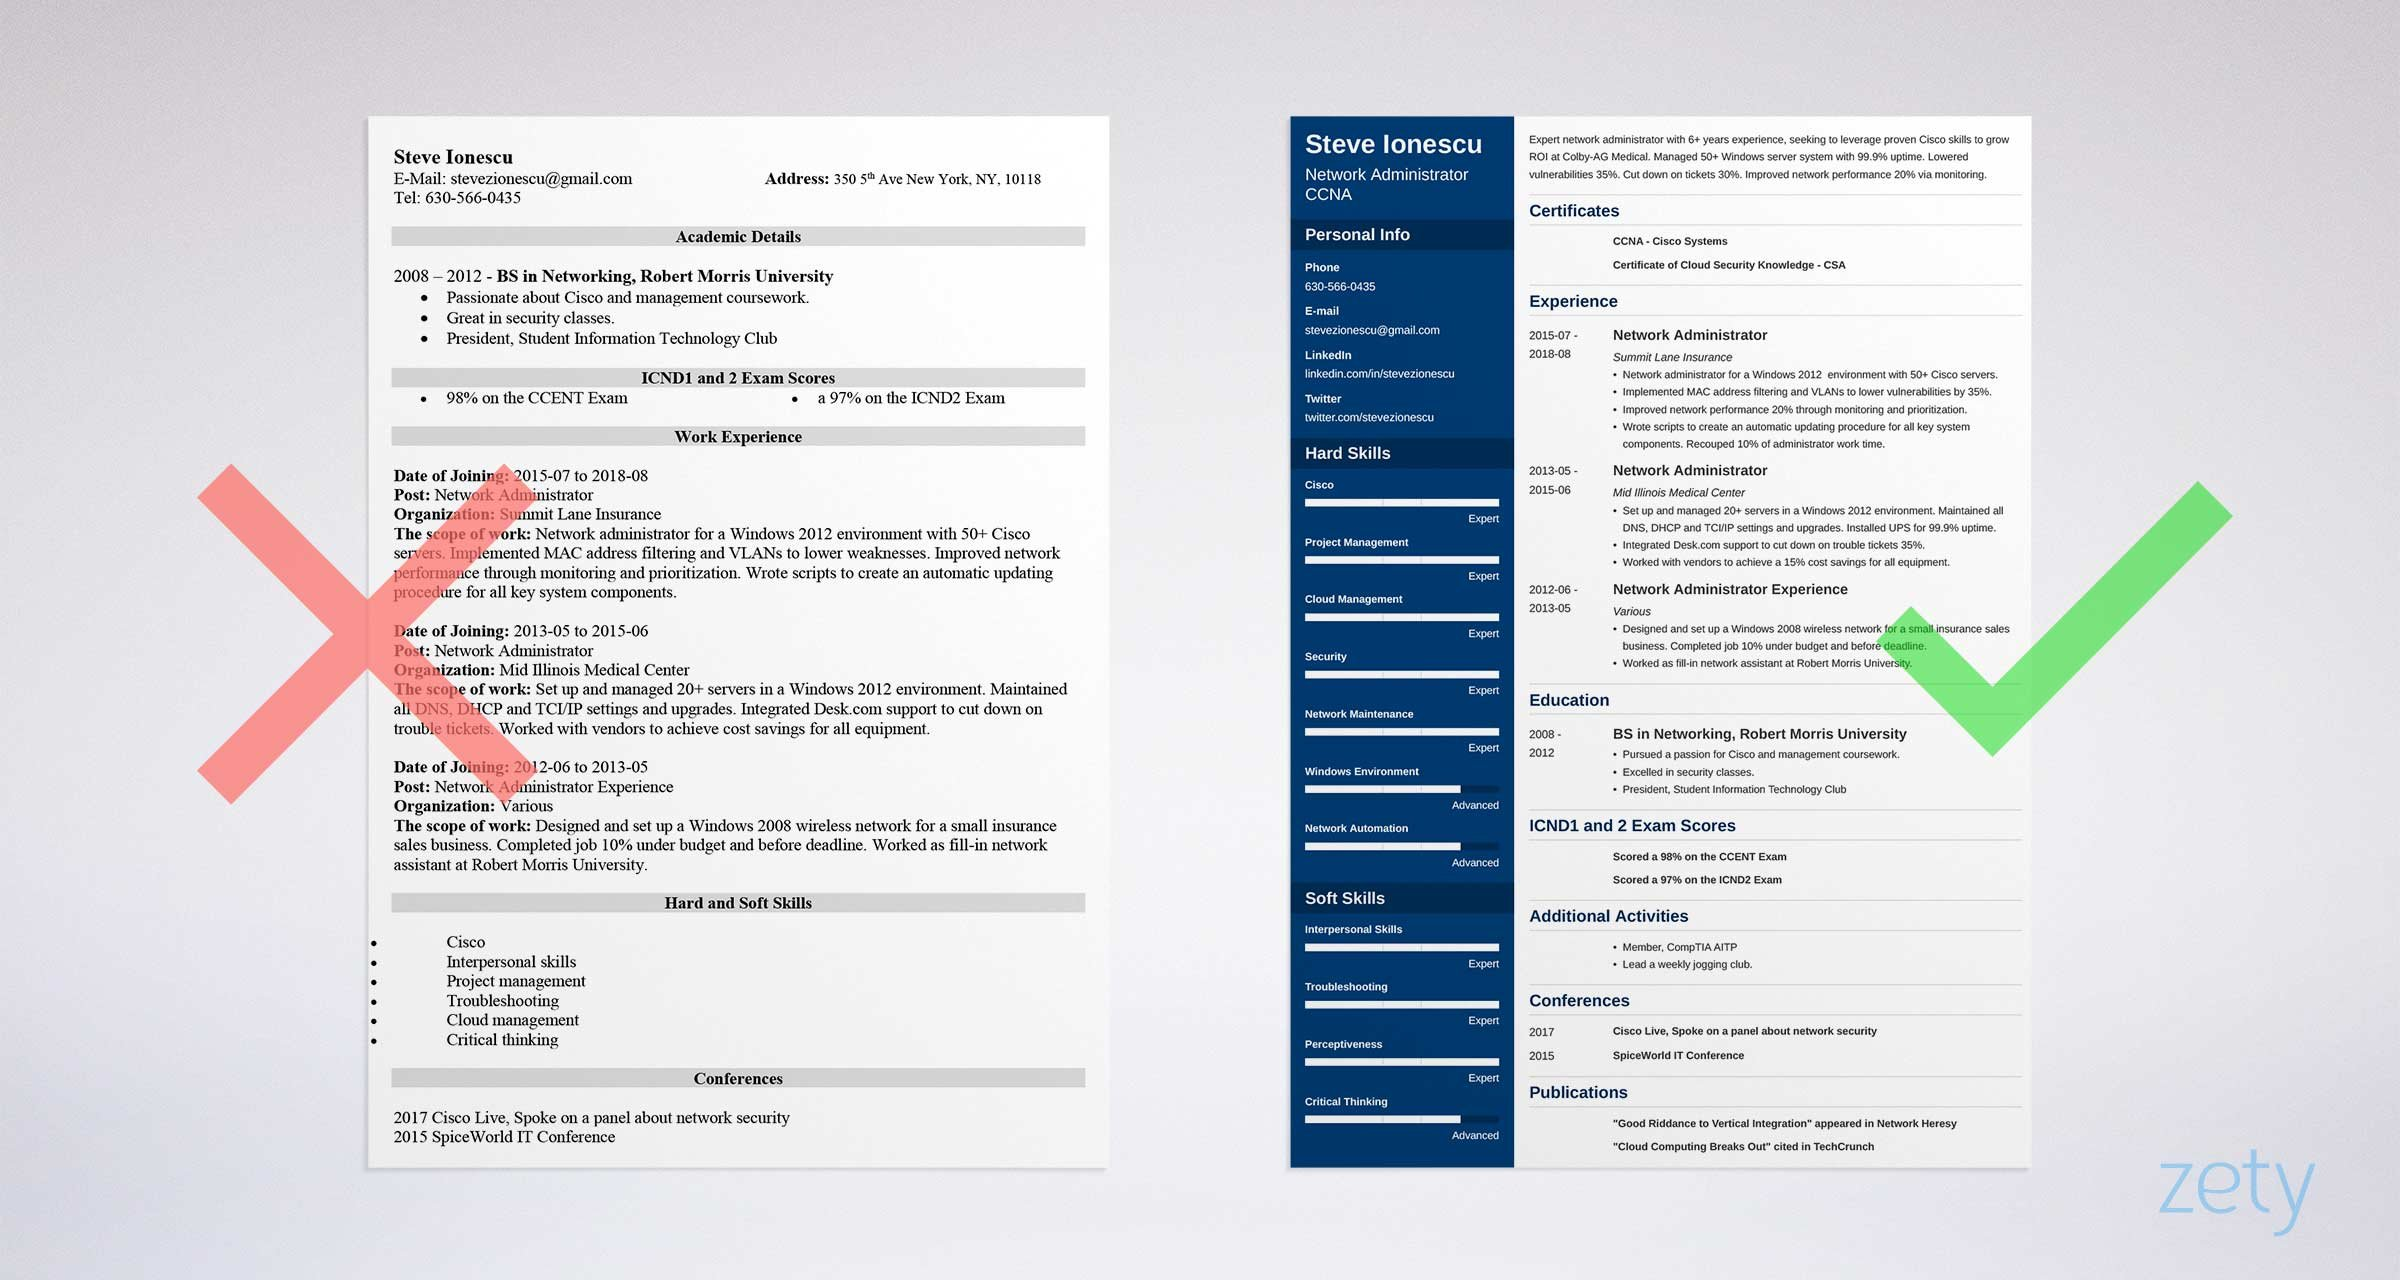 network administrator resume example see 20 resume templates and create your resume here - Network Administrators Resume